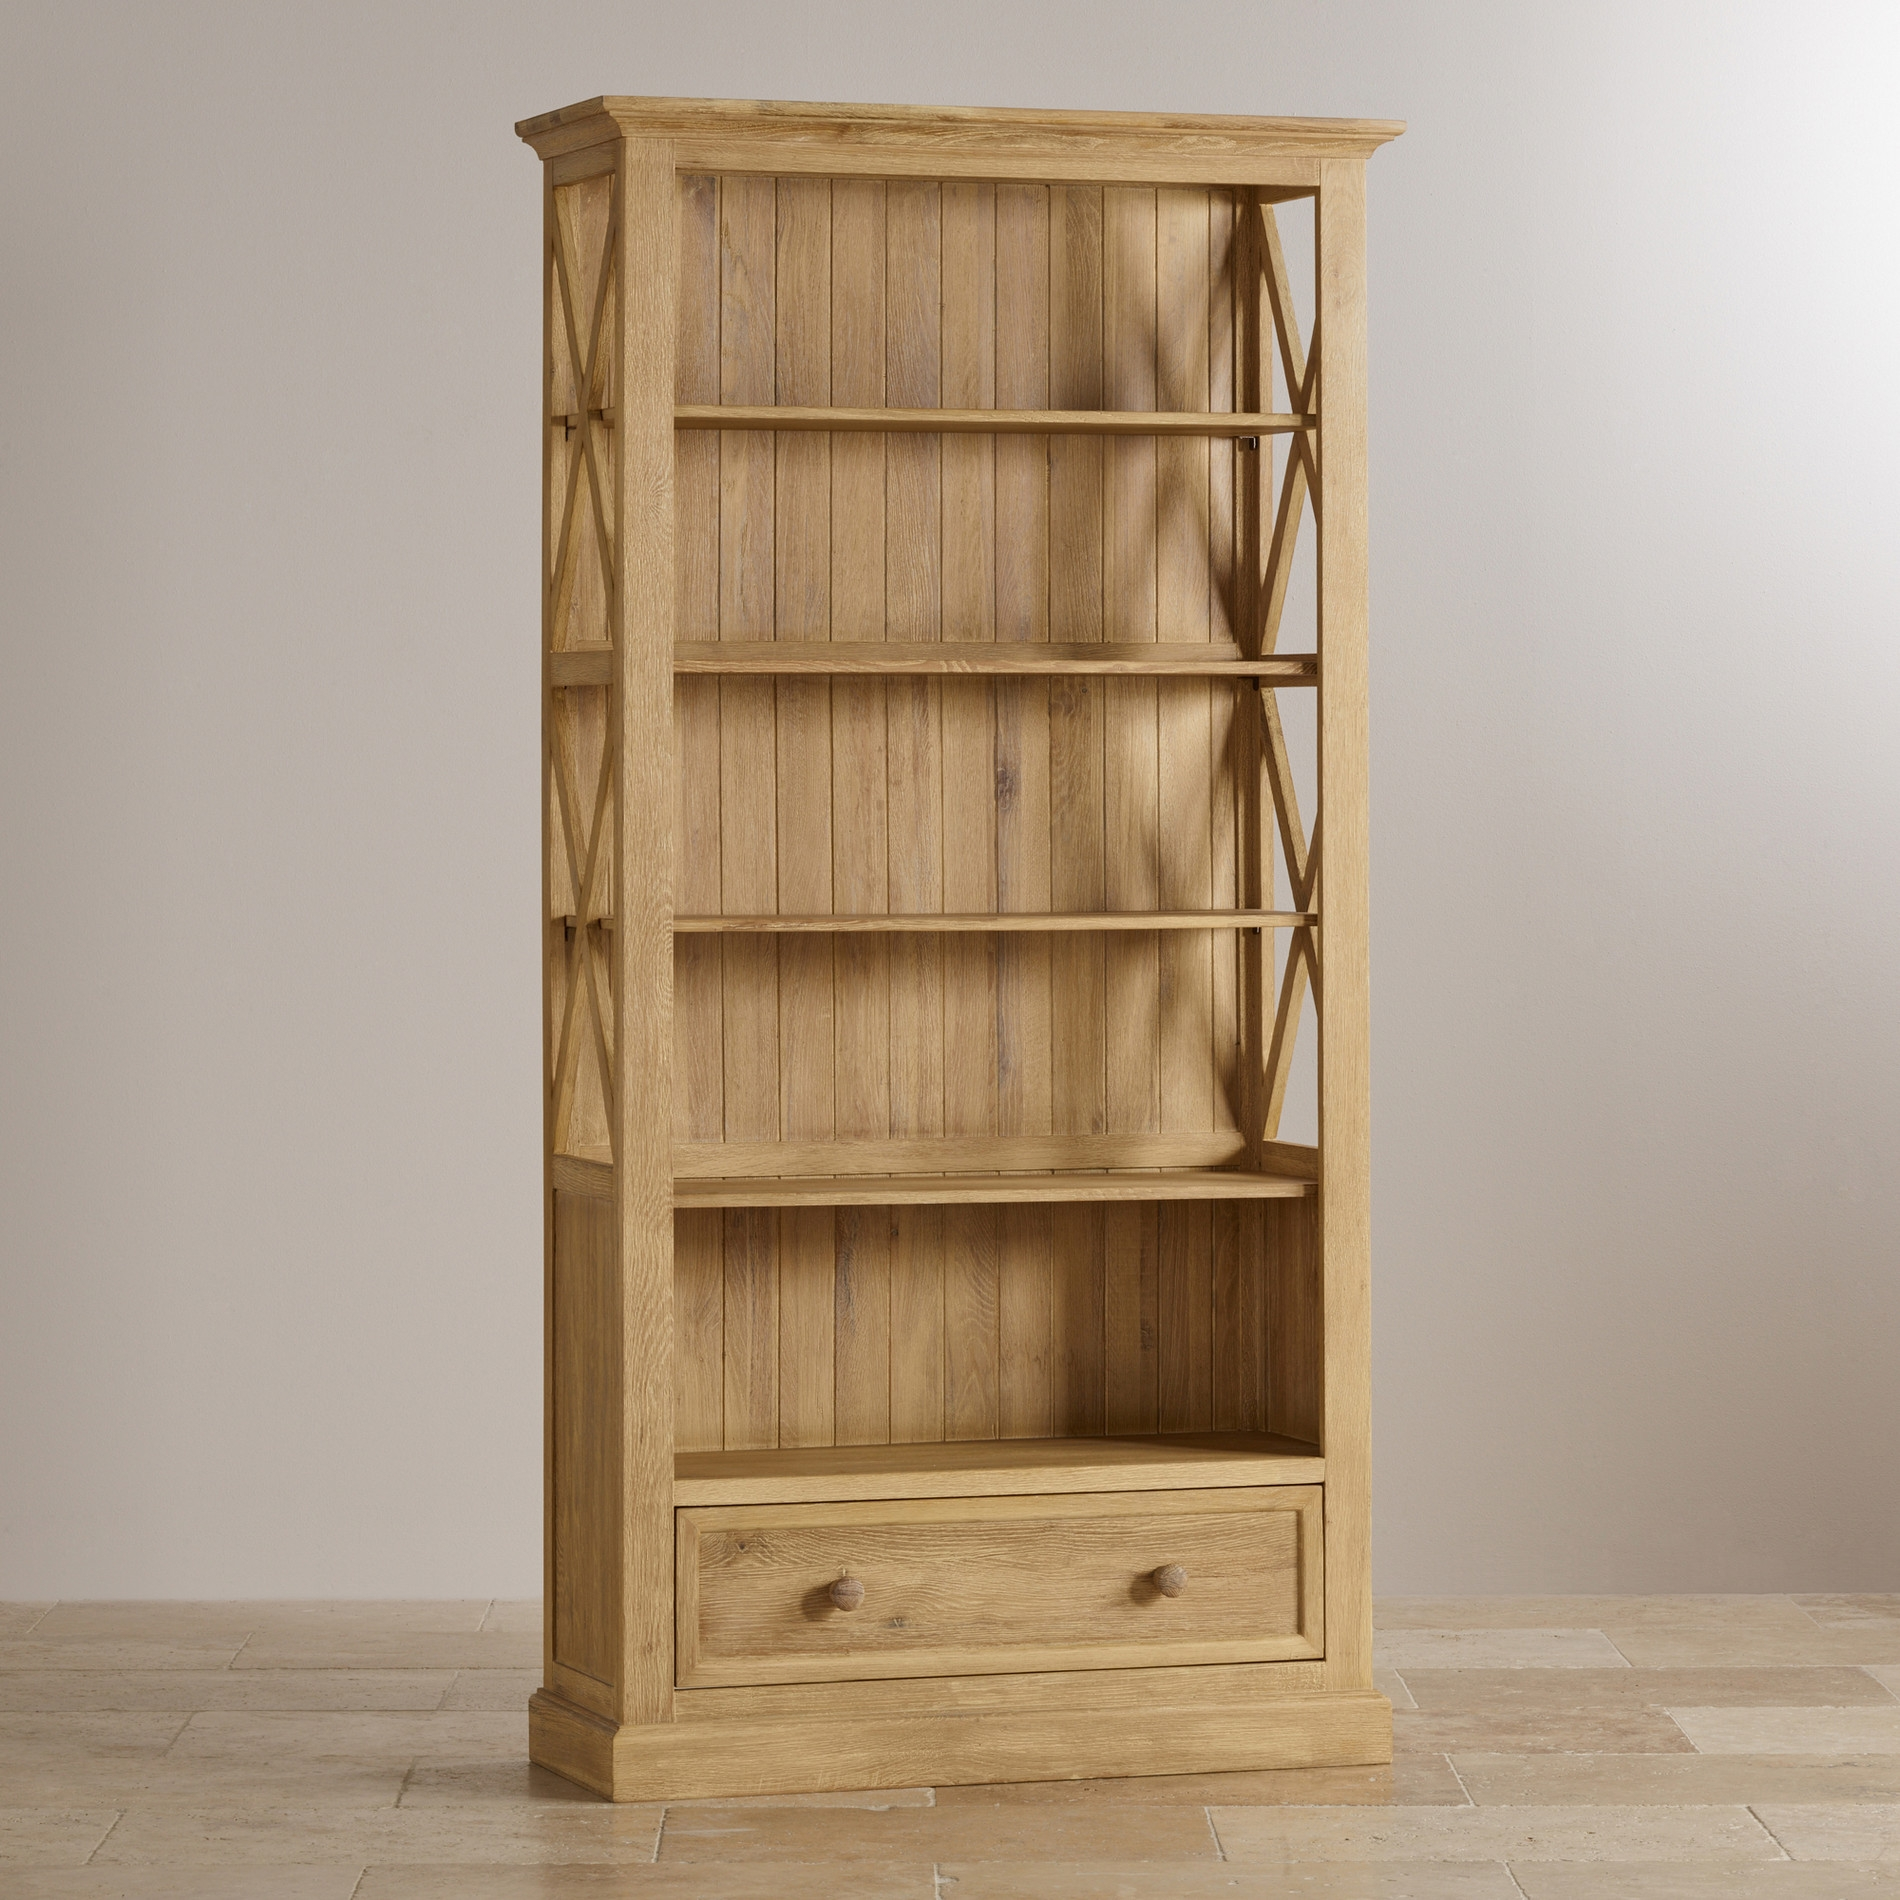 Oak Bookcase For Protecting Your Books And Stationery Furniture Regarding Oak Bookcases (View 14 of 15)